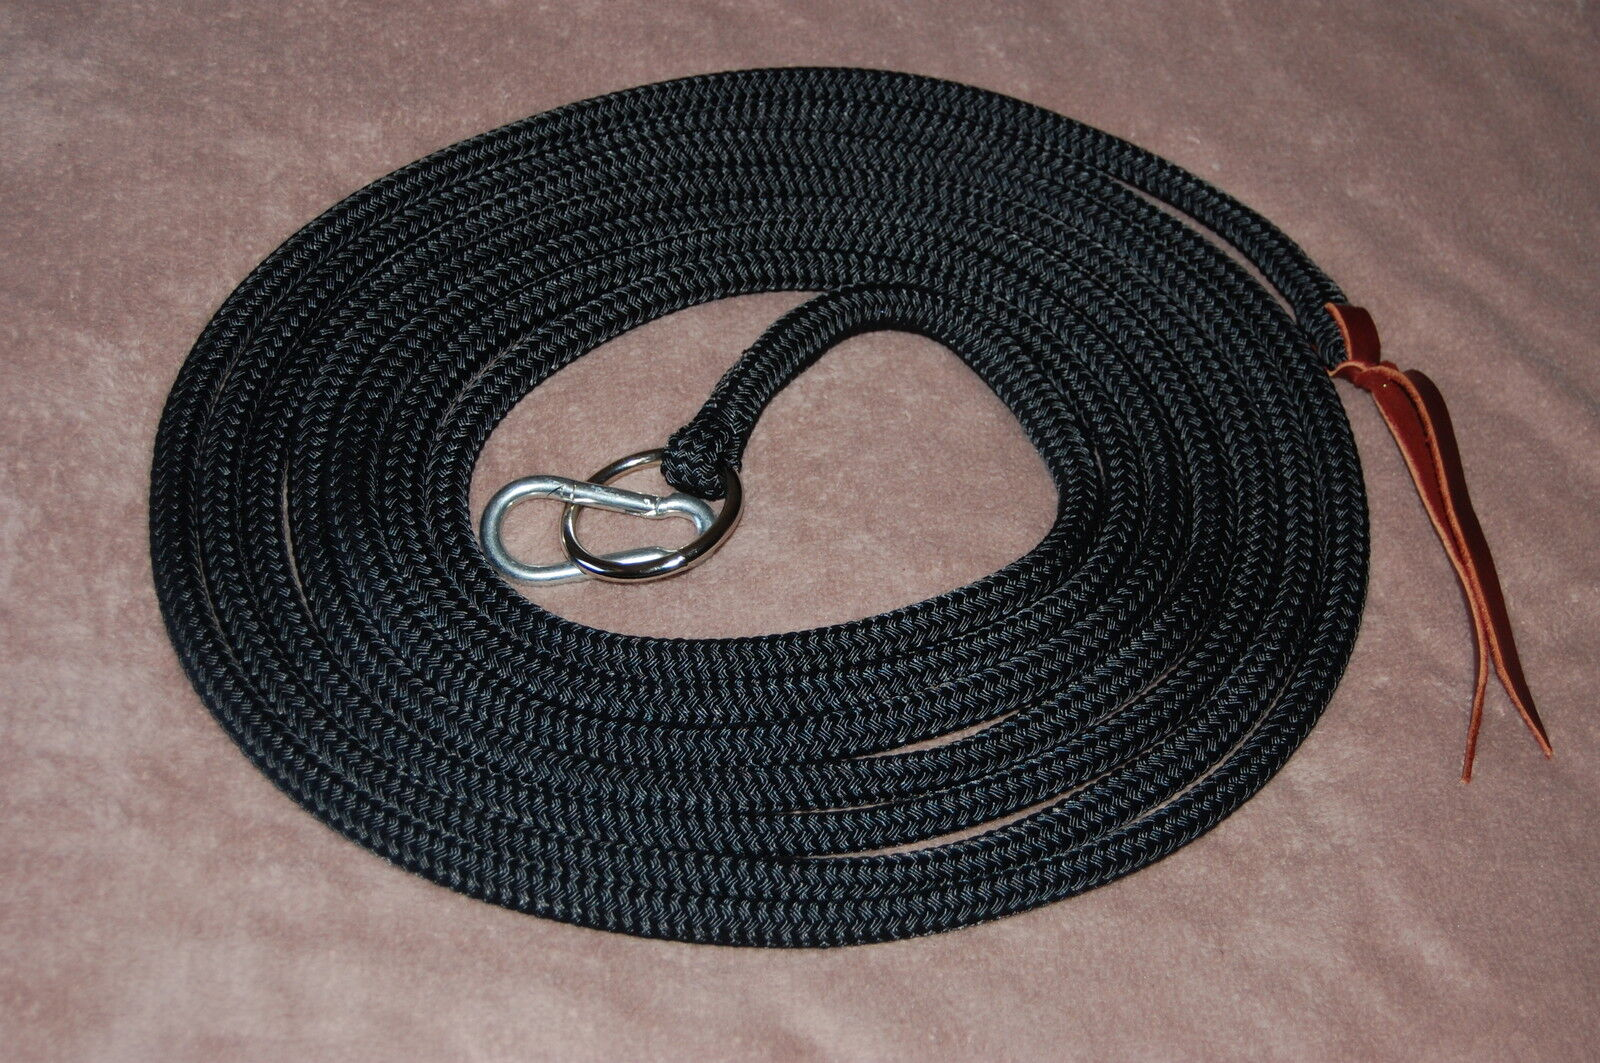 22' LONGE LINE w SS RING & CARABINER, FOR PARELLI TRAINING, MANY AVAIL. COLORS